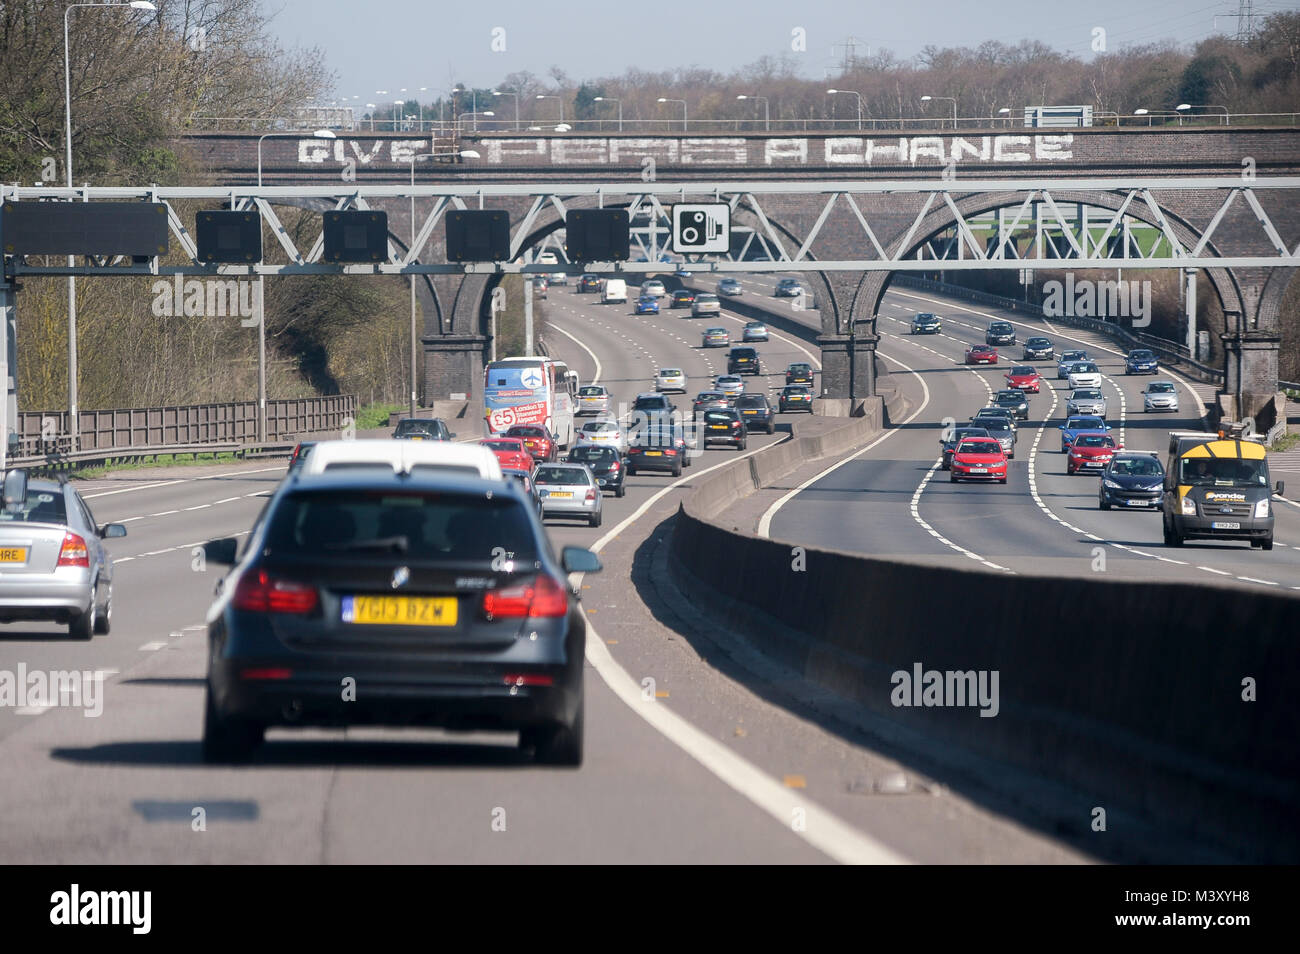 M25 motorway encircles almost all of Greater London, England, United Kingdom. April 6th 2015 © Wojciech Strozyk - Stock Image